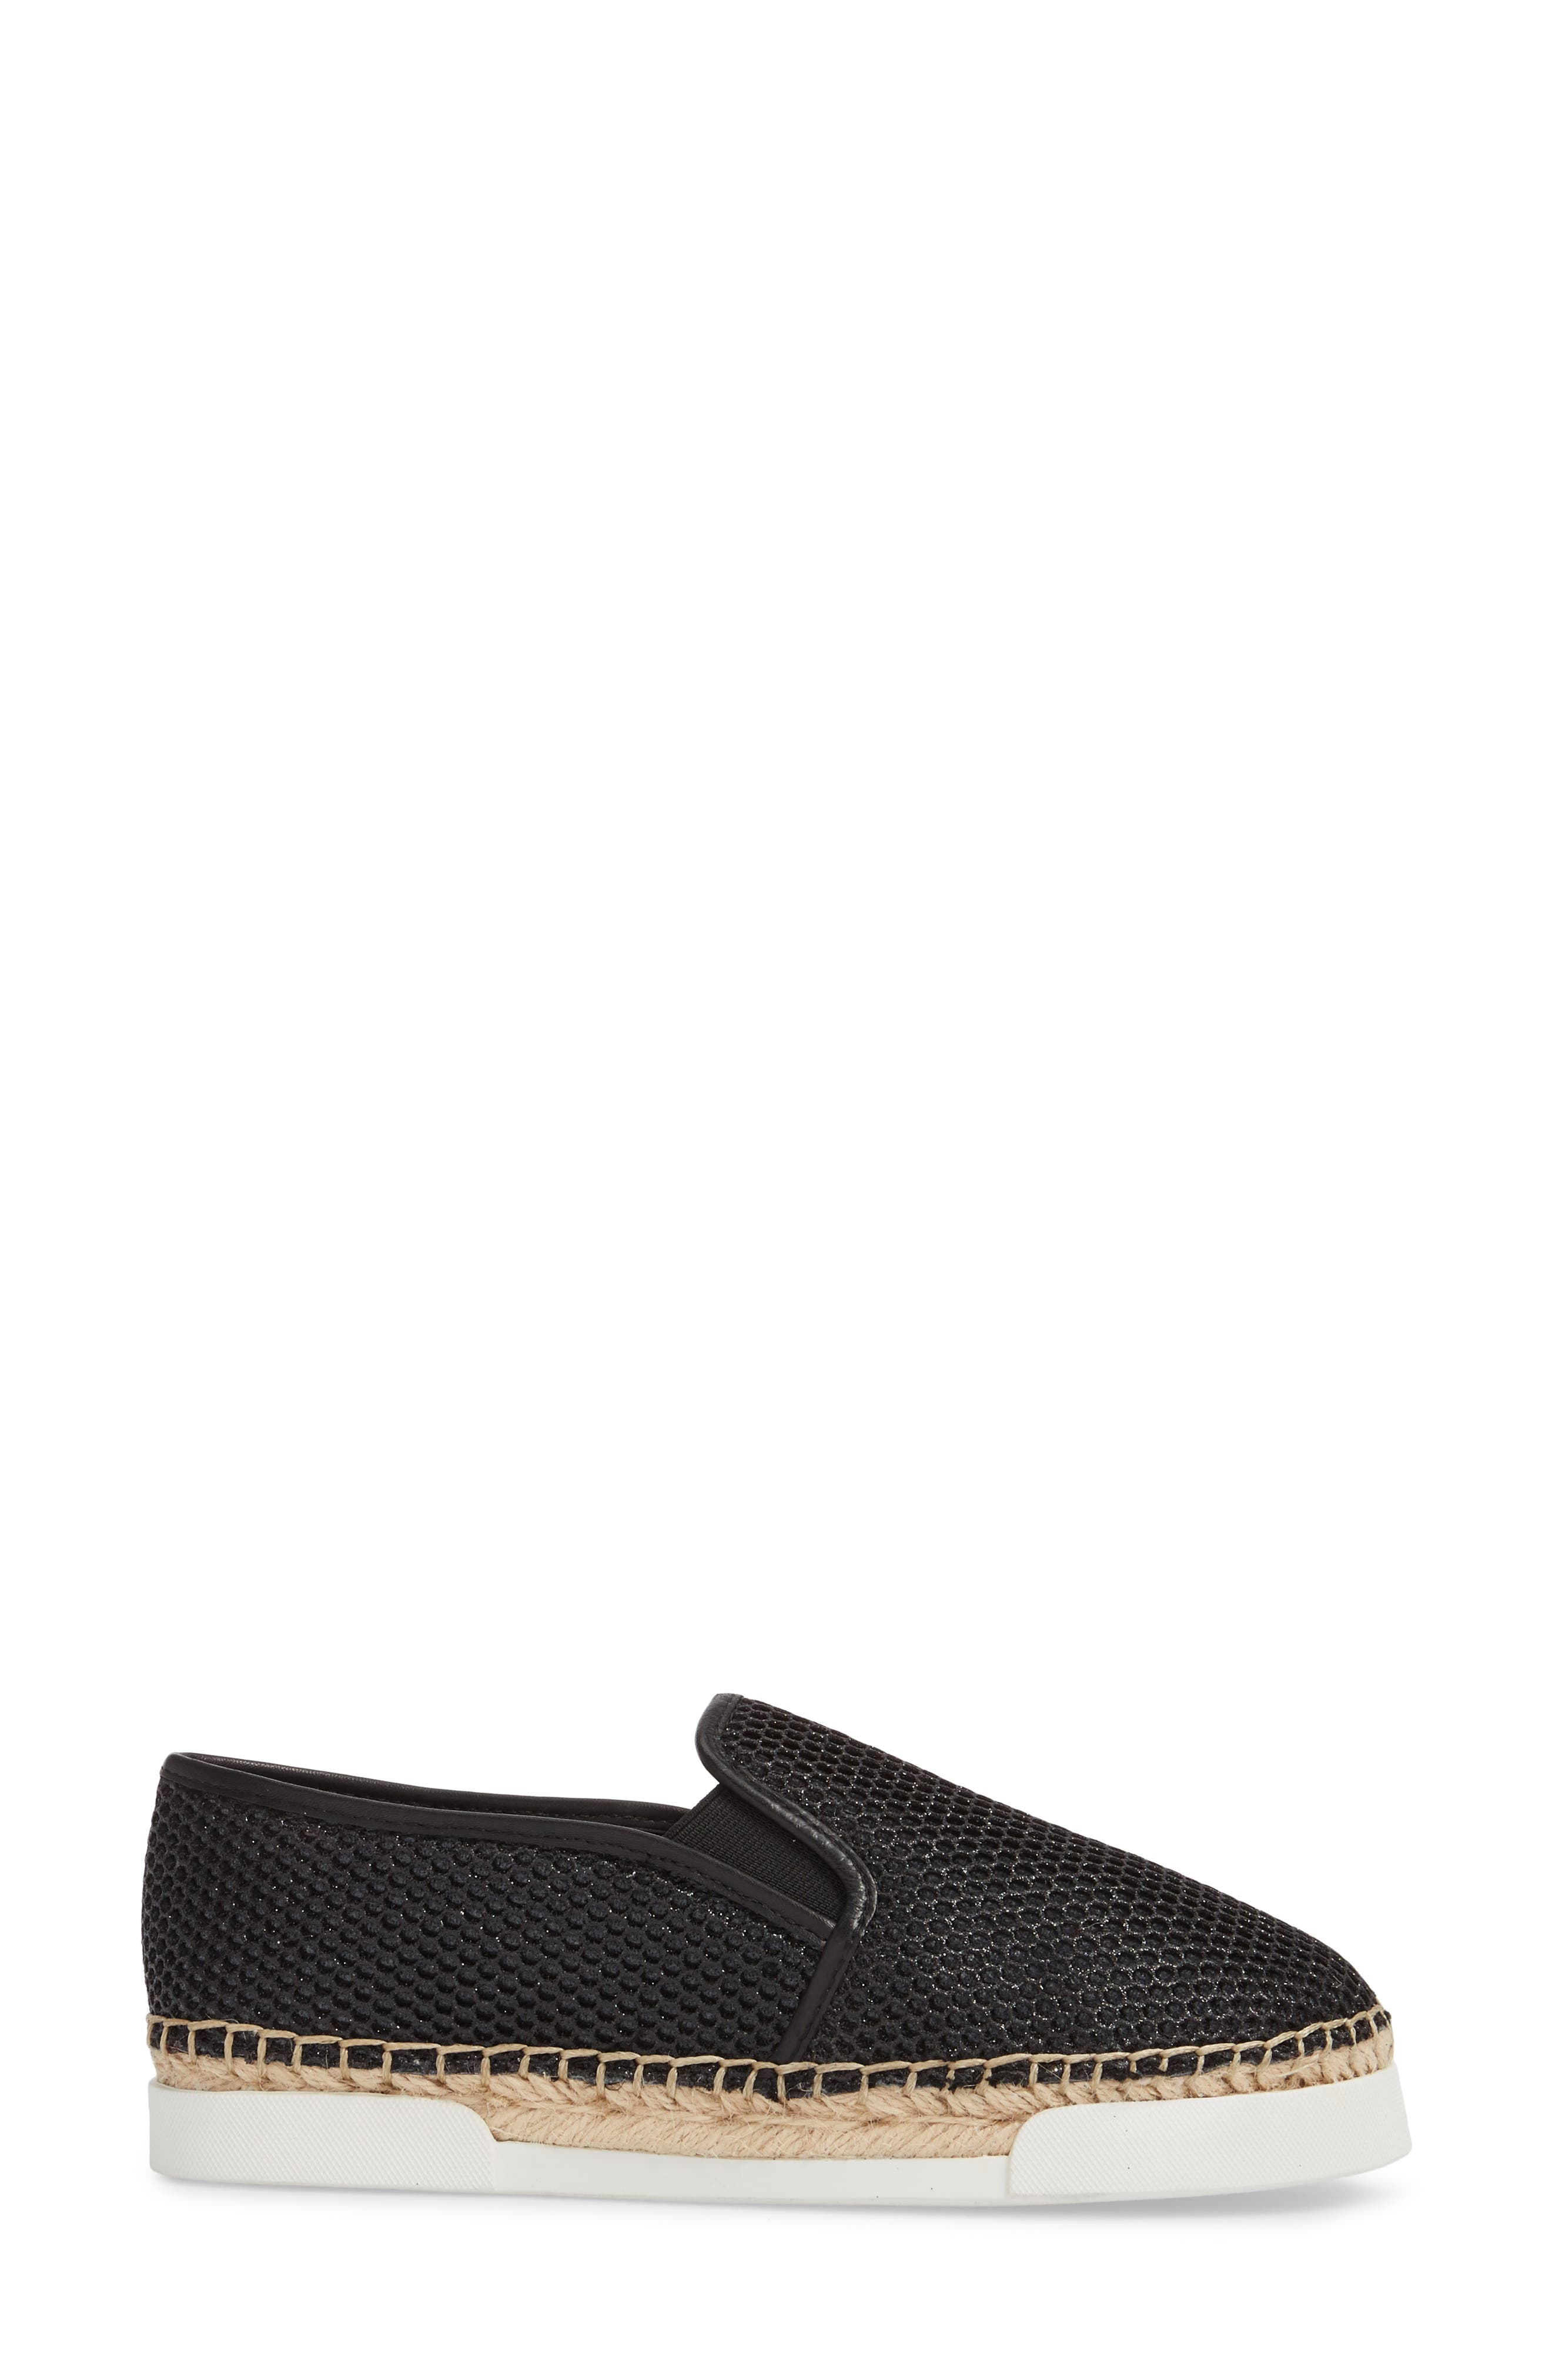 VINCE CAMUTO, Tambie Slip-On Sneaker, Alternate thumbnail 3, color, 001